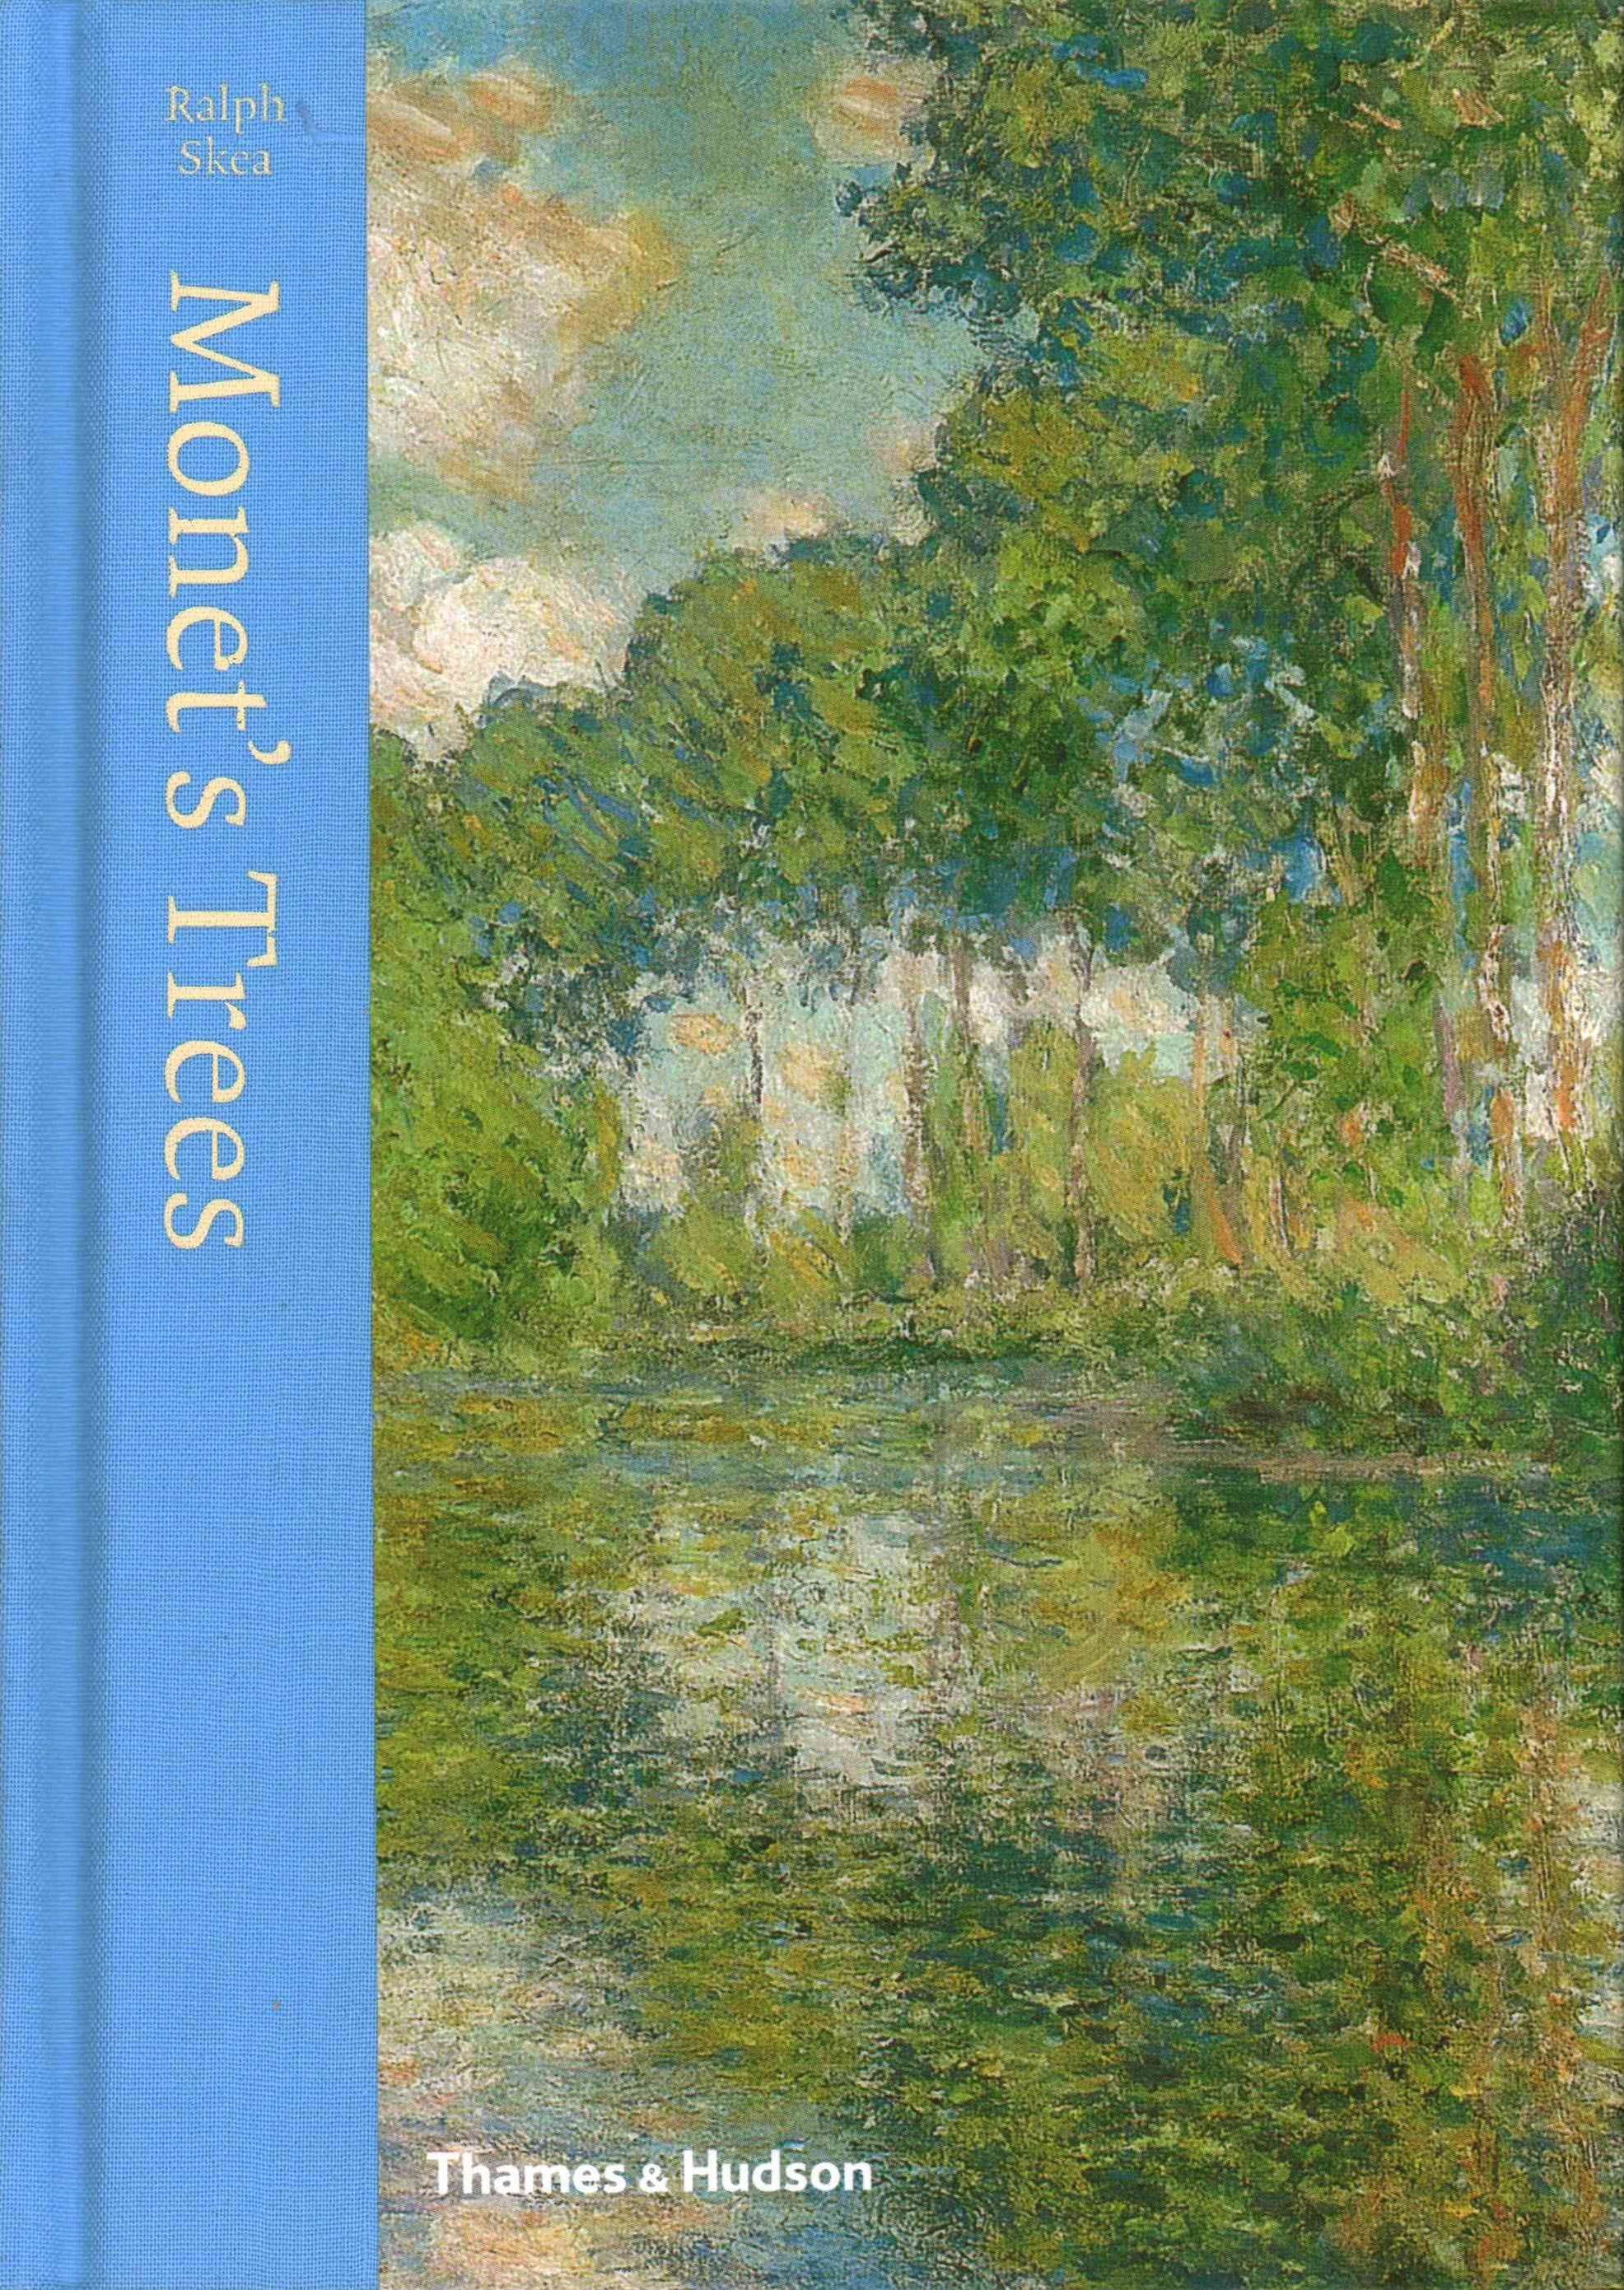 Monet's Trees: Paintings and Drawings by Claude Monet